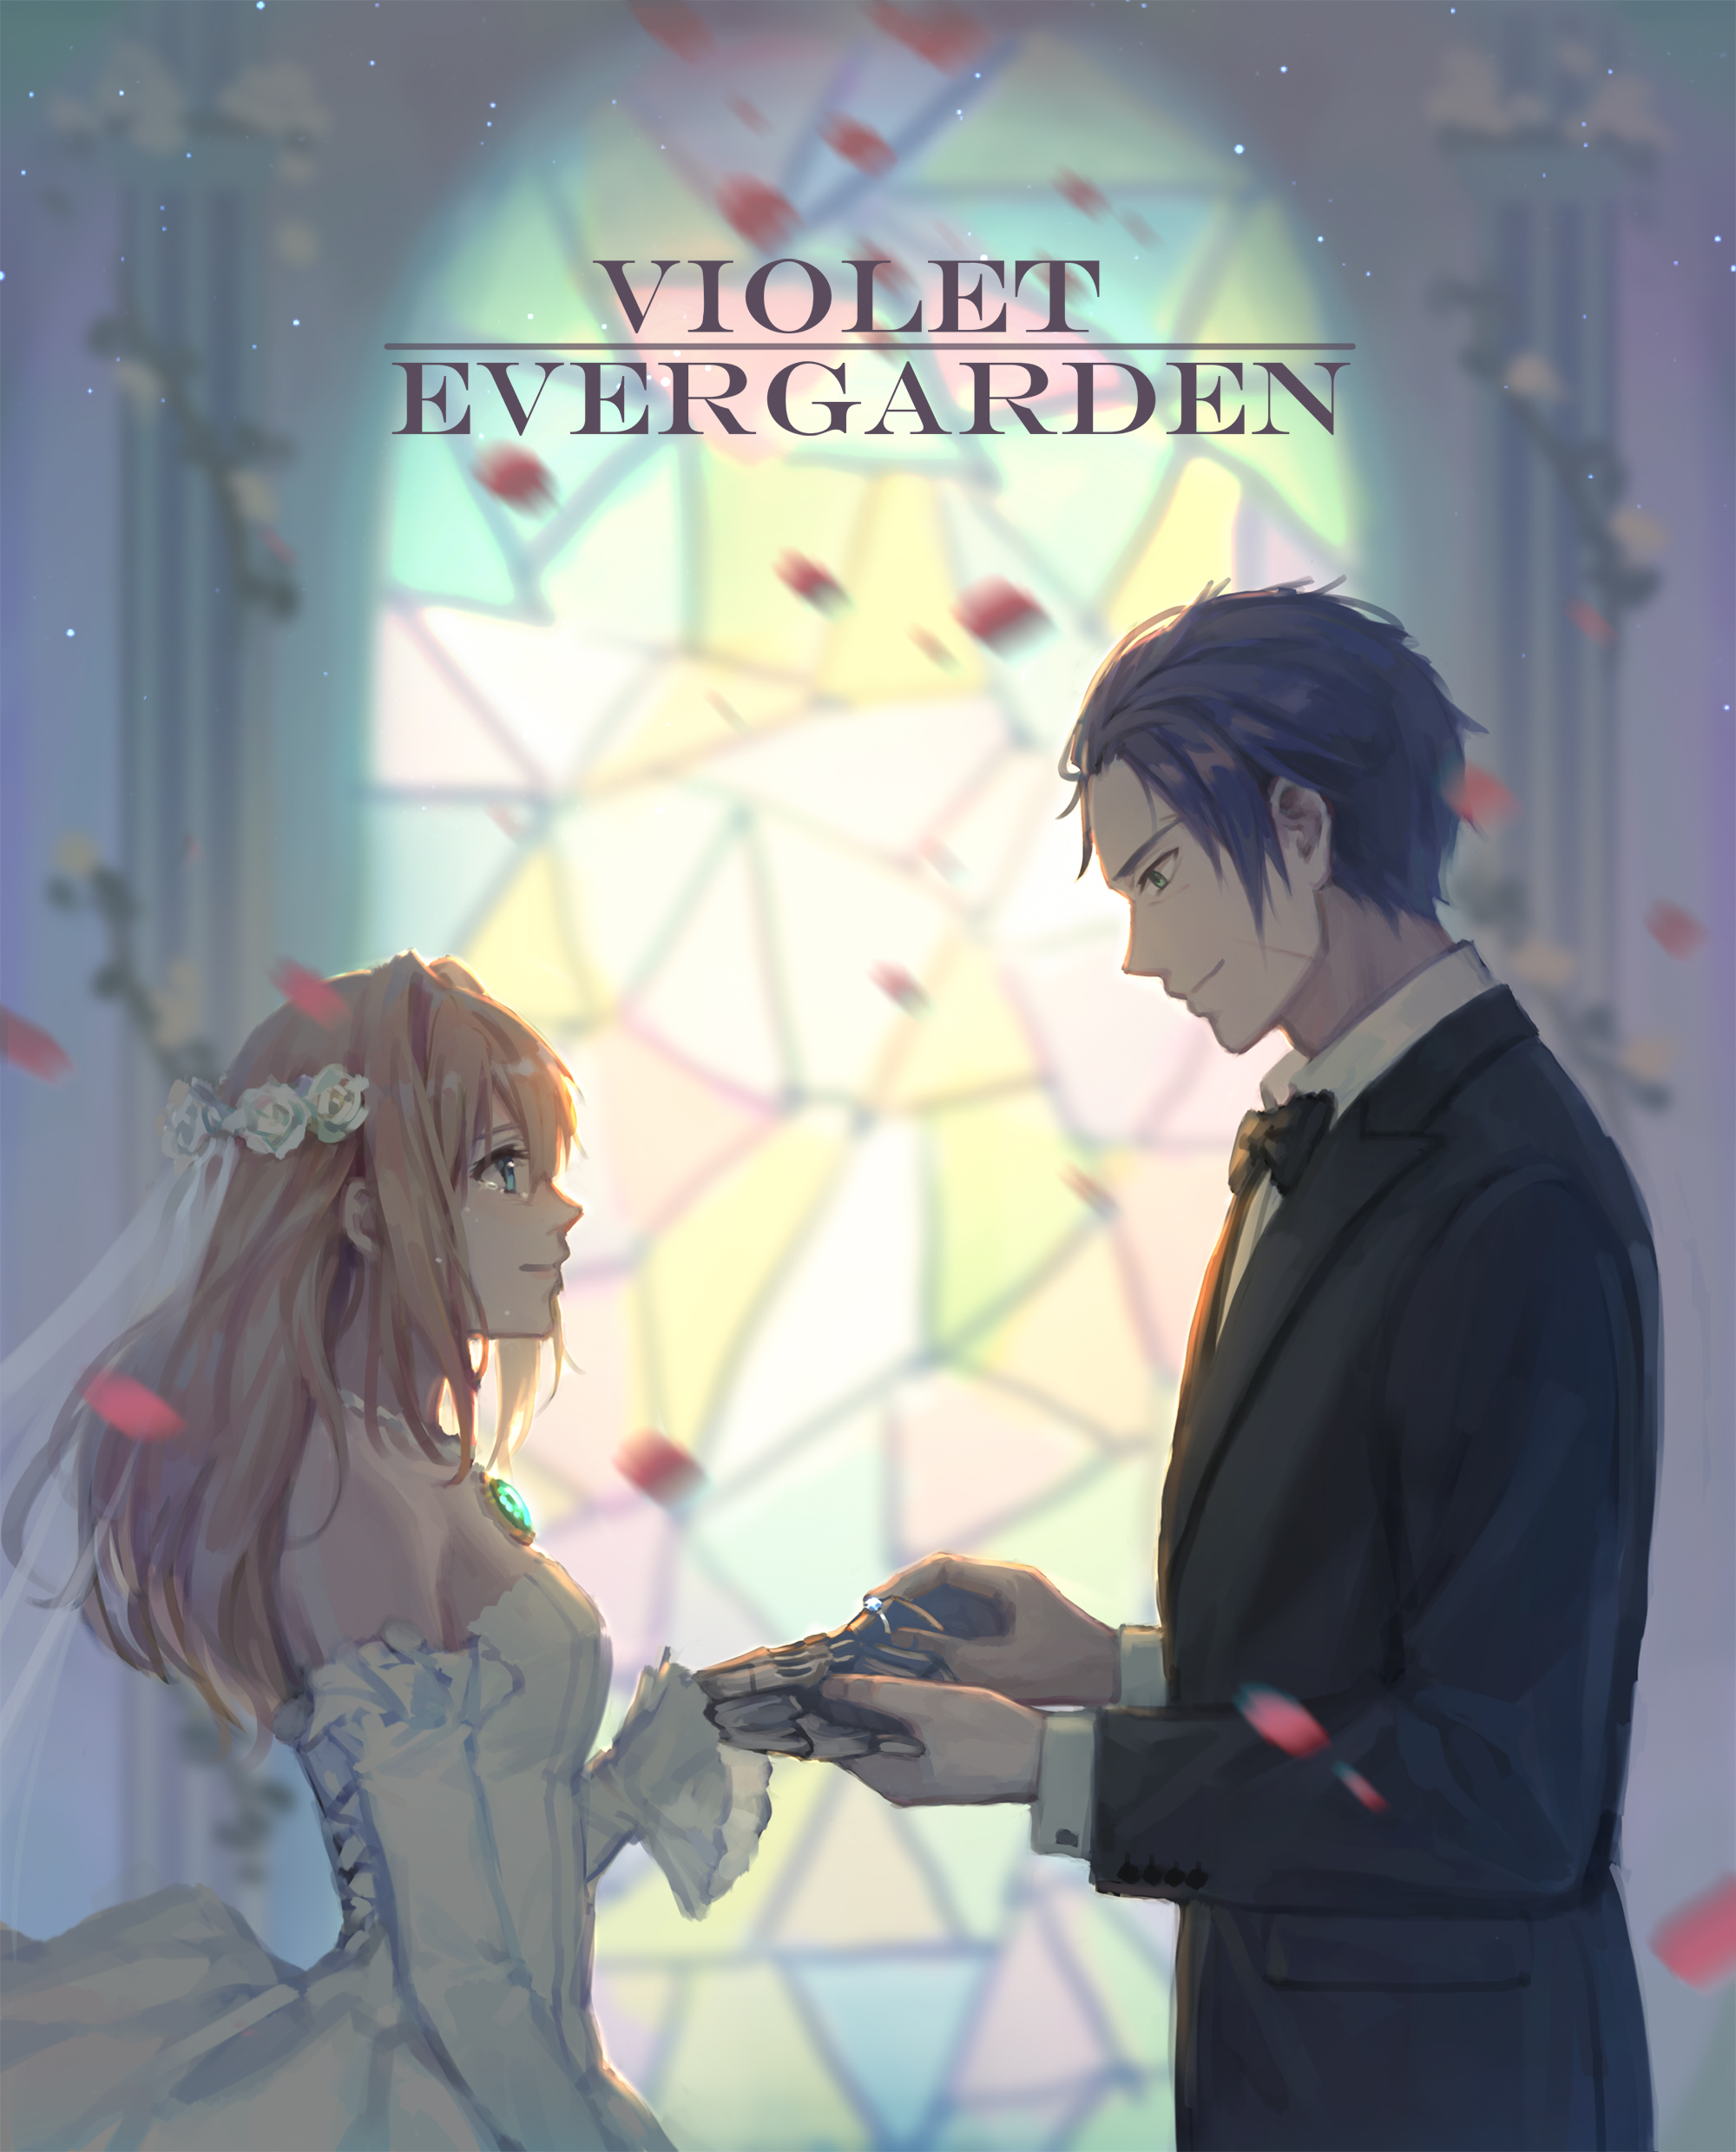 violet evergarden images violet evergarden full 2304450 hd wallpaper